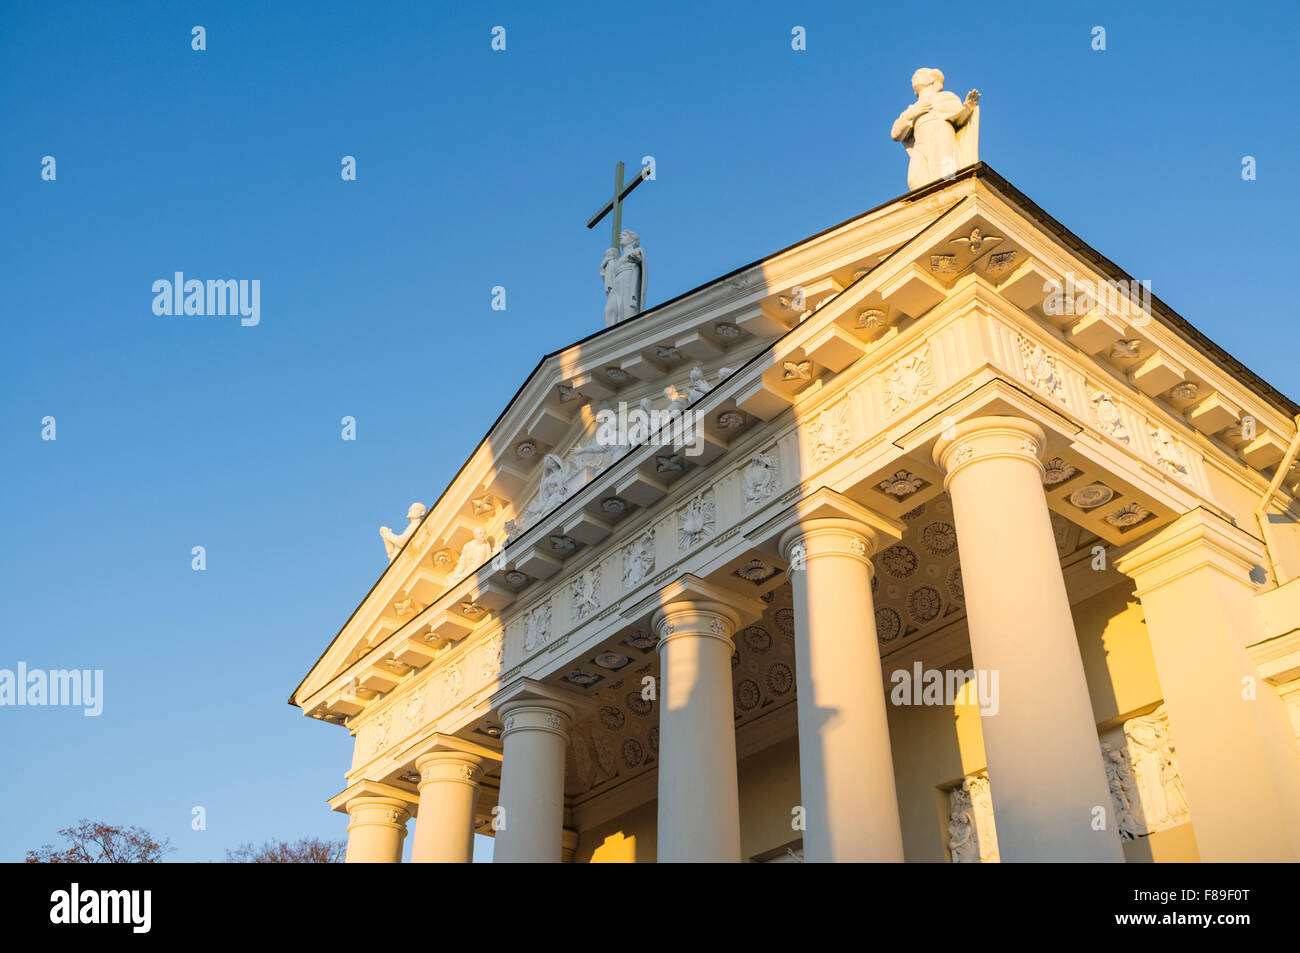 Vilnius Cathedral front in warm light. Vilnius, Lithuania, Europe Stock Photo